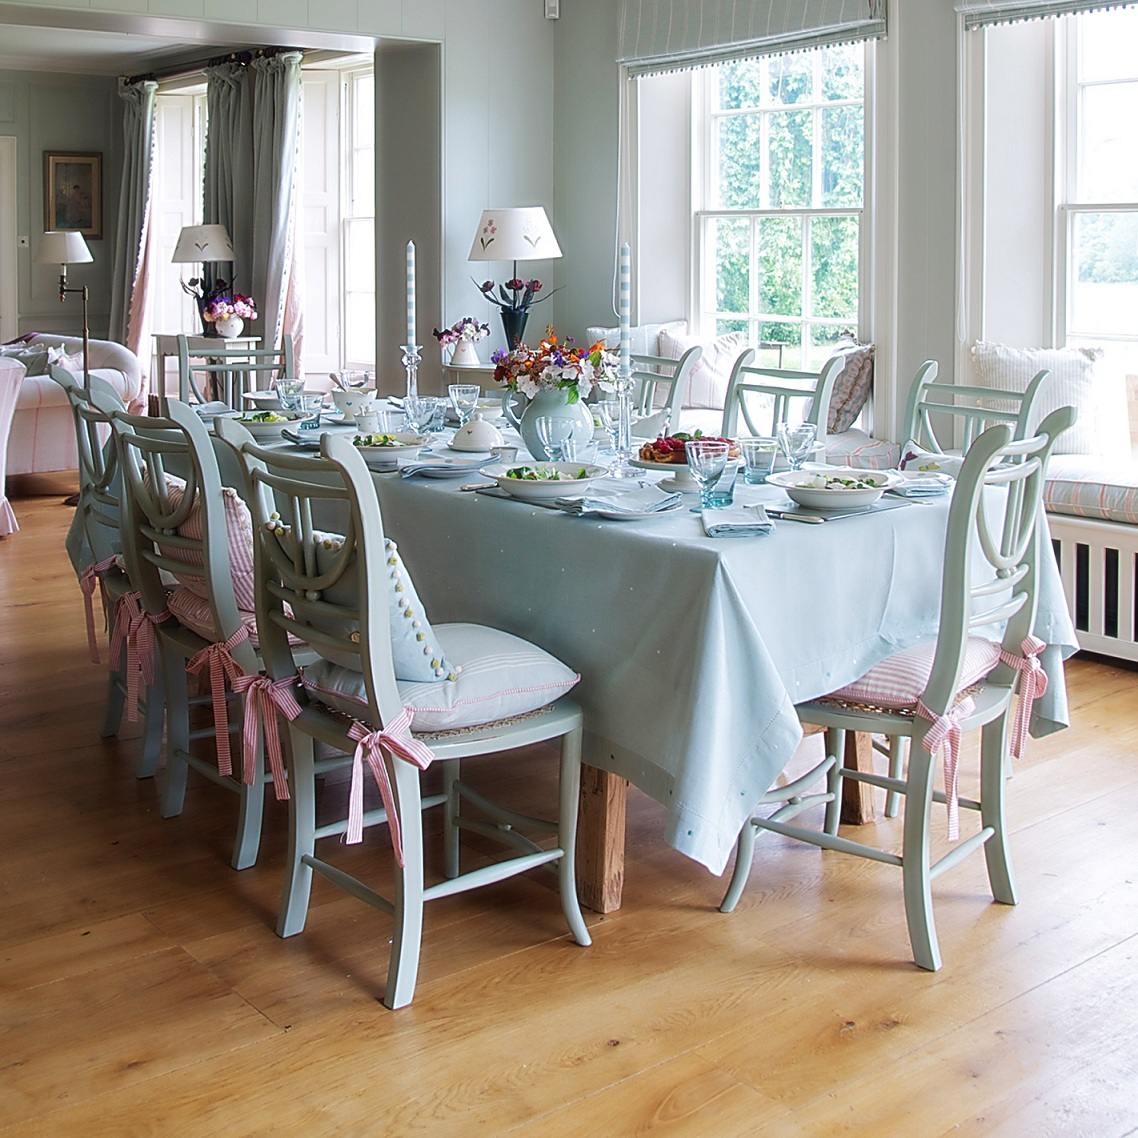 Image of: Dining Chair Cushions with Ties Decor